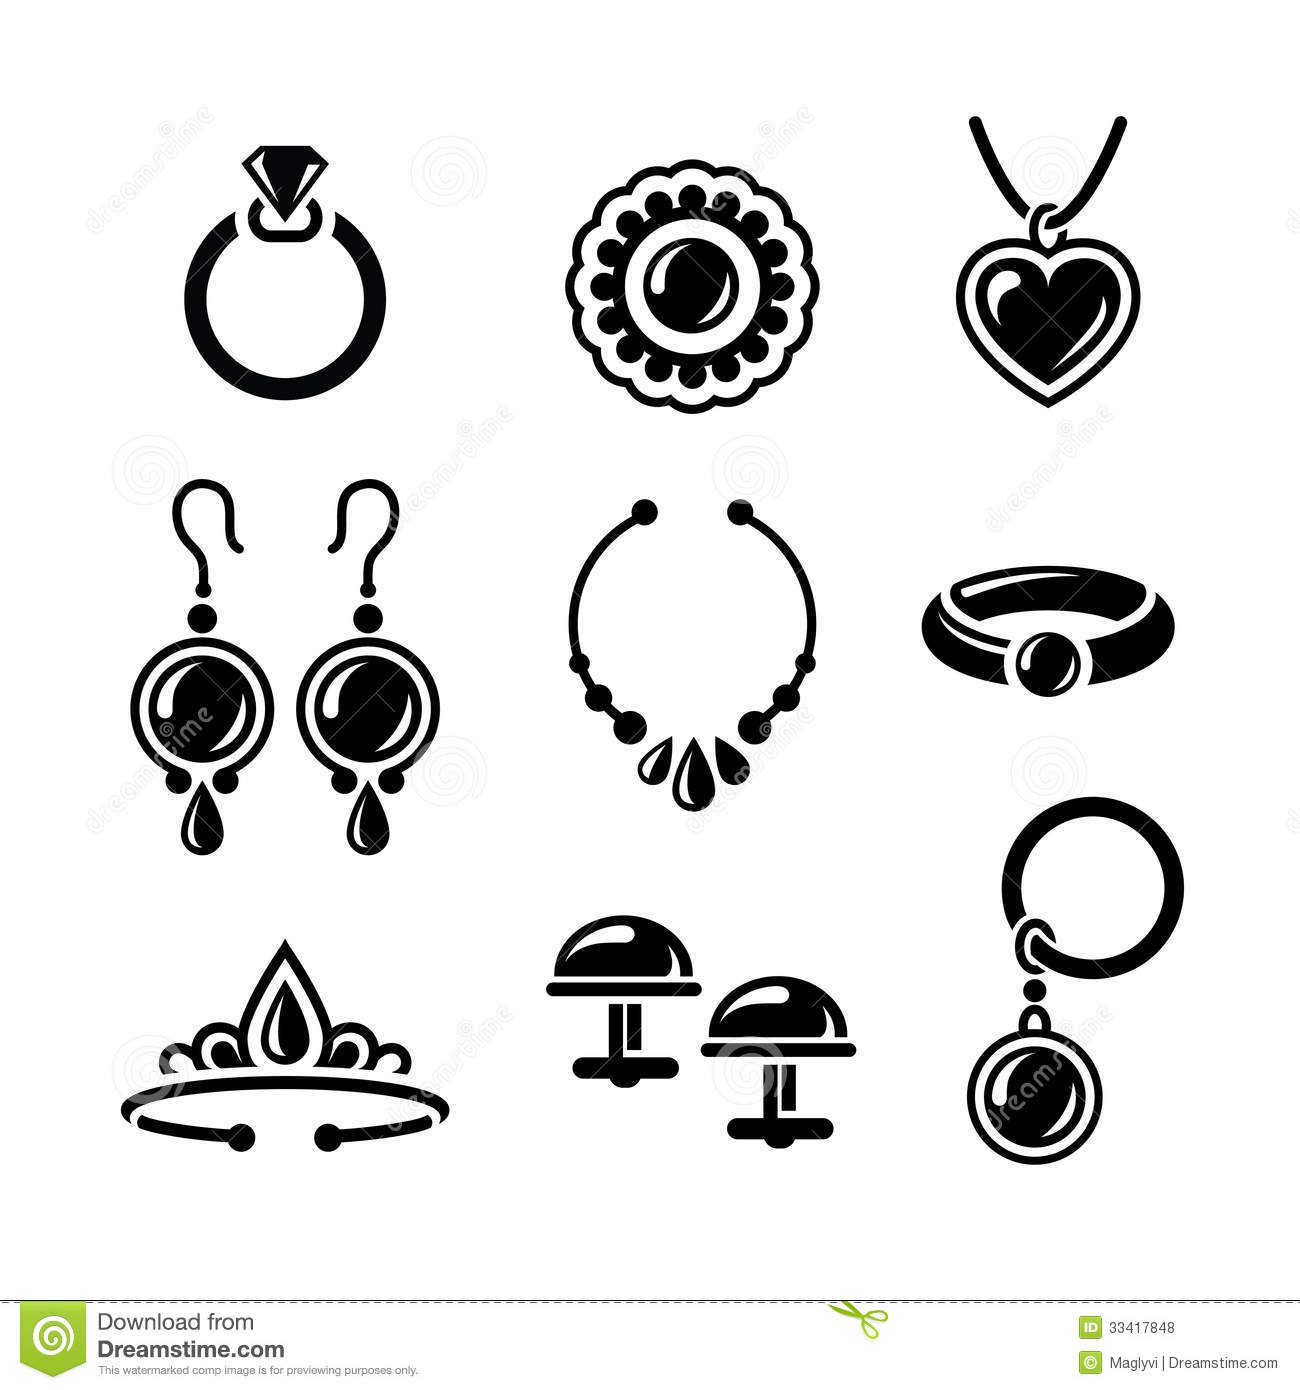 jewelry icons clipart panda free clipart images rh clipartpanda com free clipart jewelry designs free clipart jewelry making